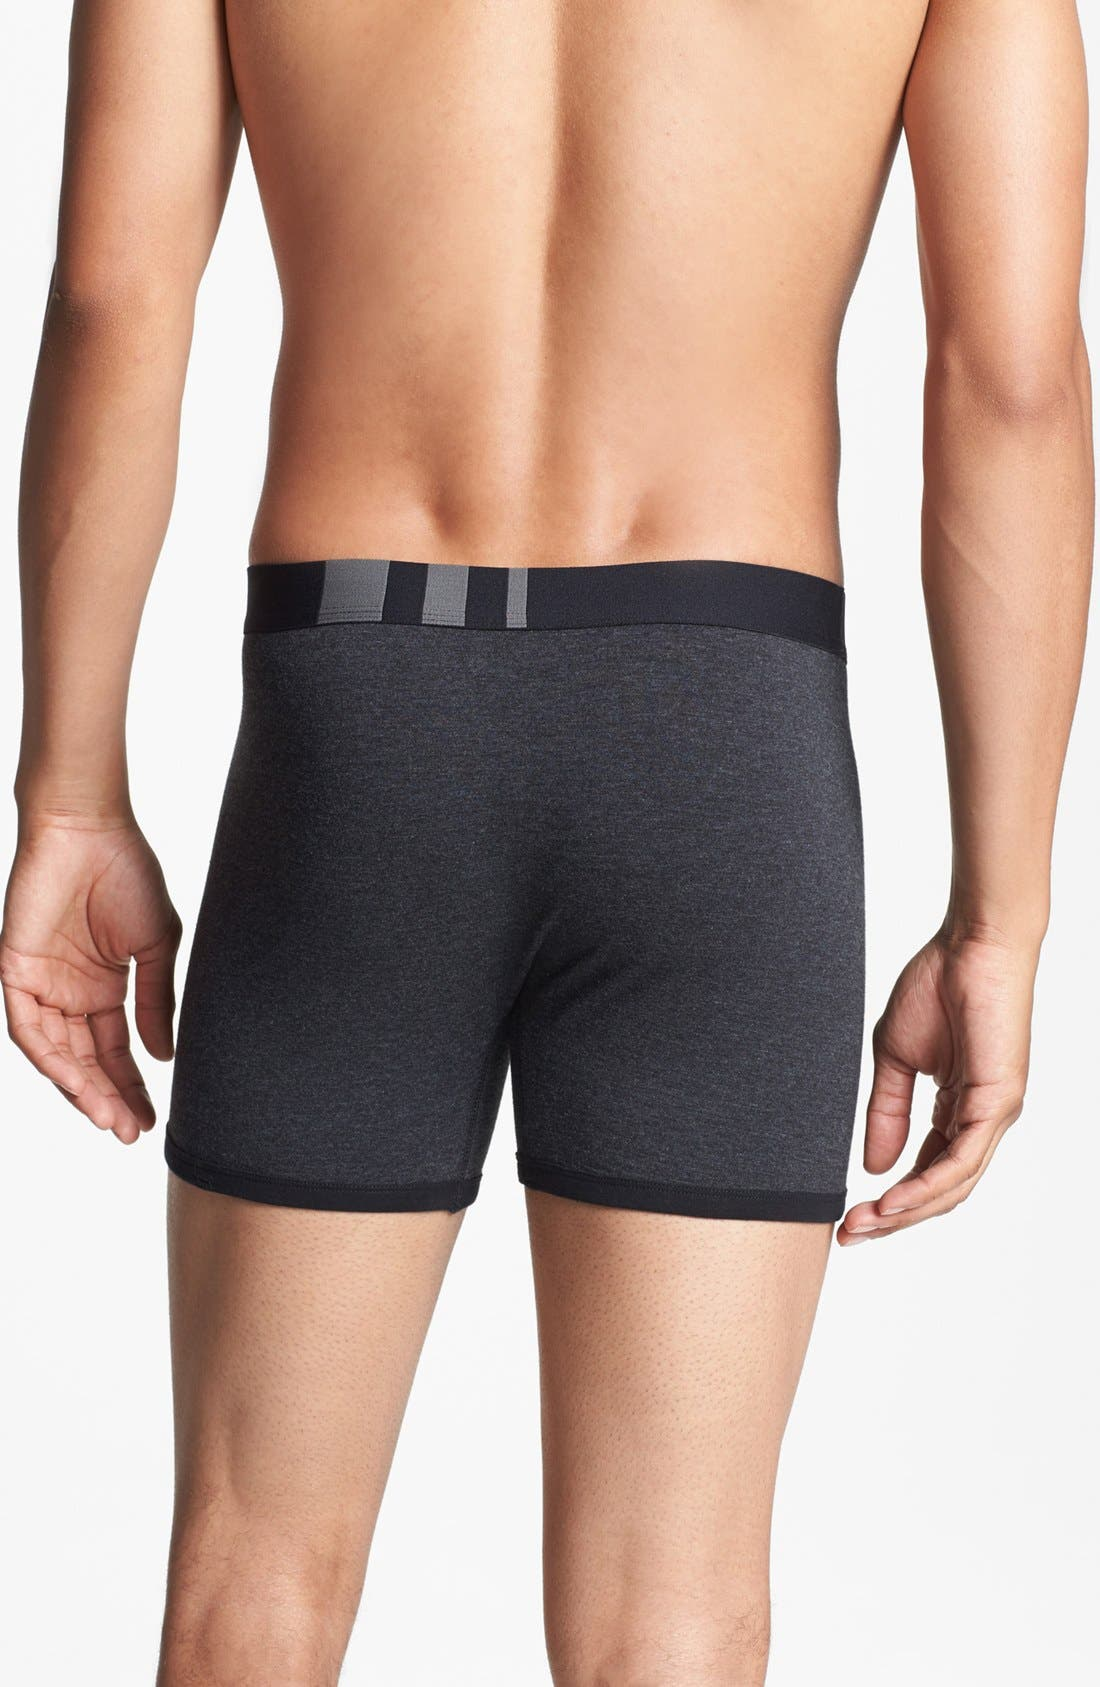 Alternate Image 4  - Basic Underwear 'Bottoms Out' Boxer Briefs (3-Pack)